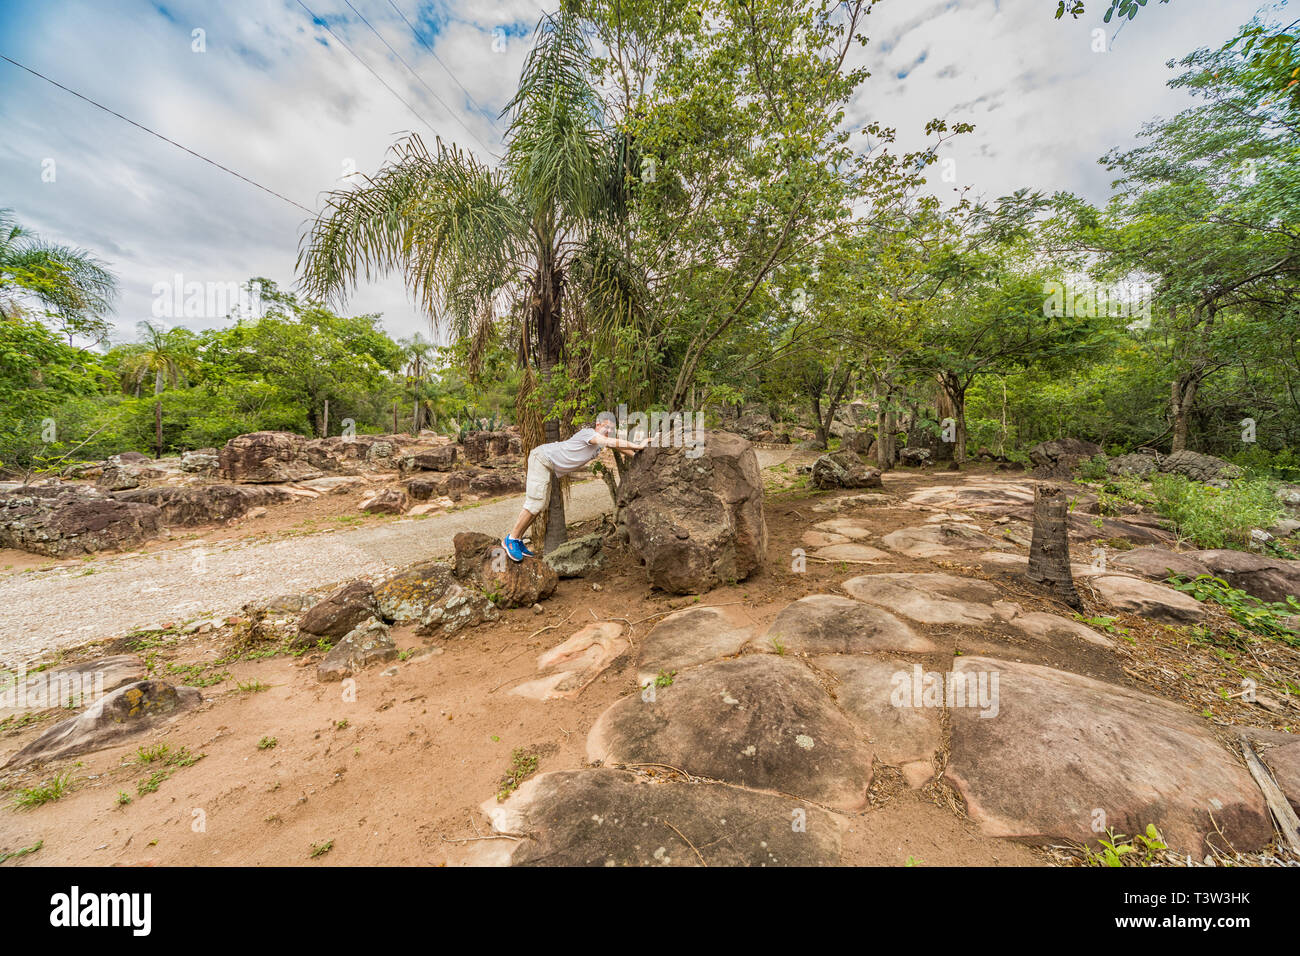 A man in a rocky wilderness in Paraguay - Stock Image